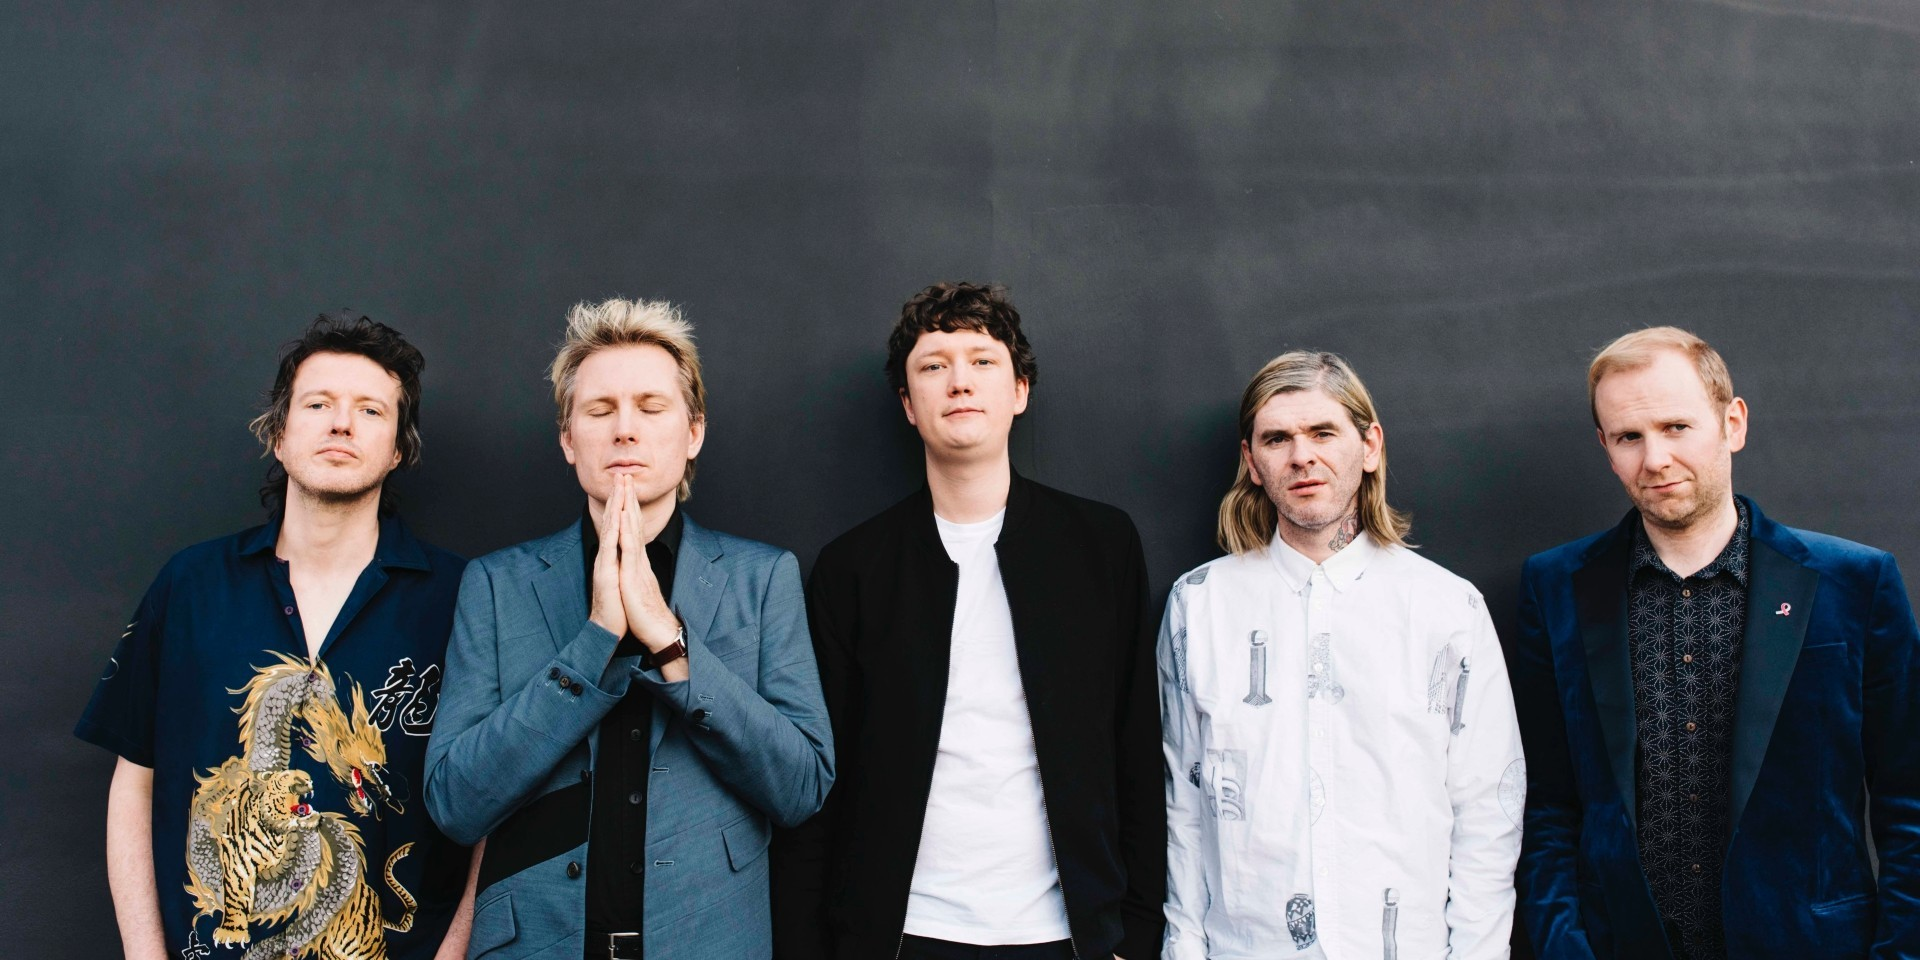 """""""We pushed it further this time"""": Franz Ferdinand's Bob Hardy reflects on the band's new album, Always Ascending"""